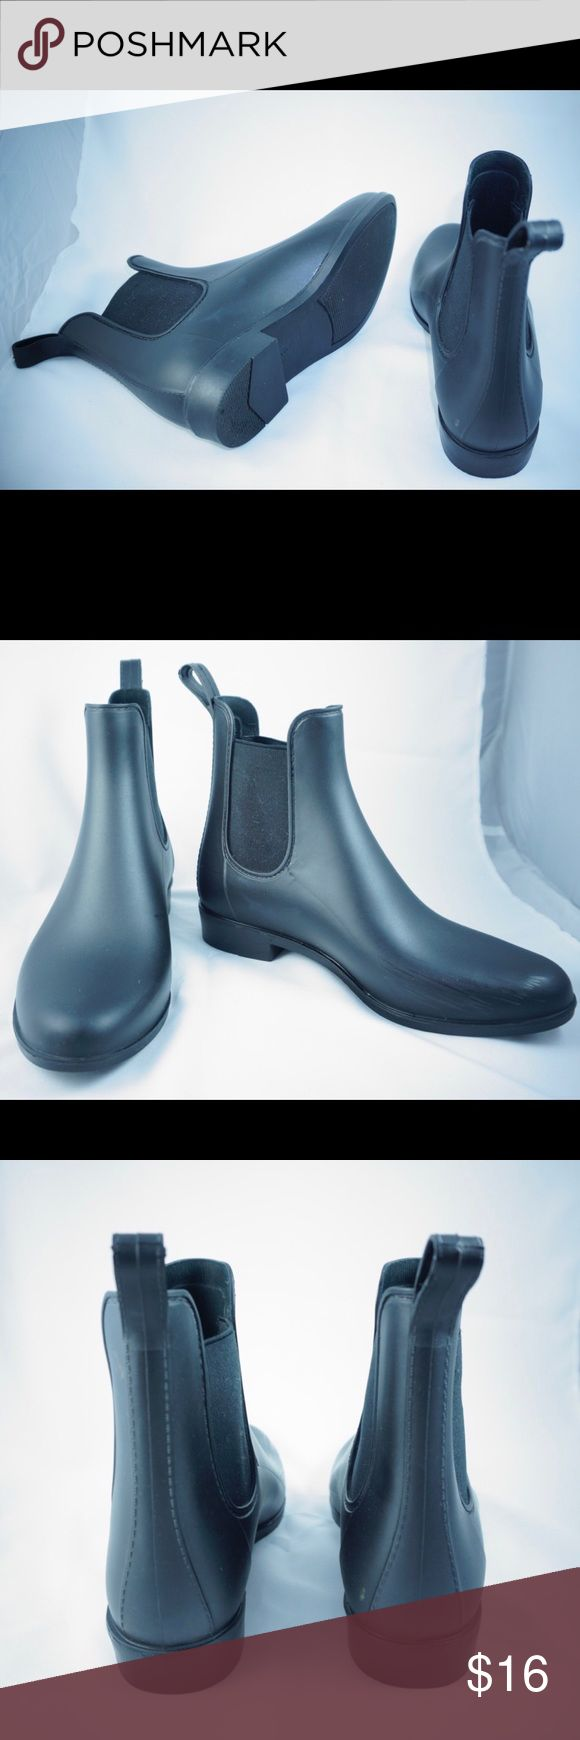 FINAL SALE! 📦🎉 ALEX CHELSEA RAINBOOTS Alexa Chelsea Rainboots by Merona ❣️ Minimal Wear, Scuffing By Toes. 👢 Feel free to leave me an offer! 😊 lowballs accepted! No lower than $5! Merona Shoes Ankle Boots & Booties